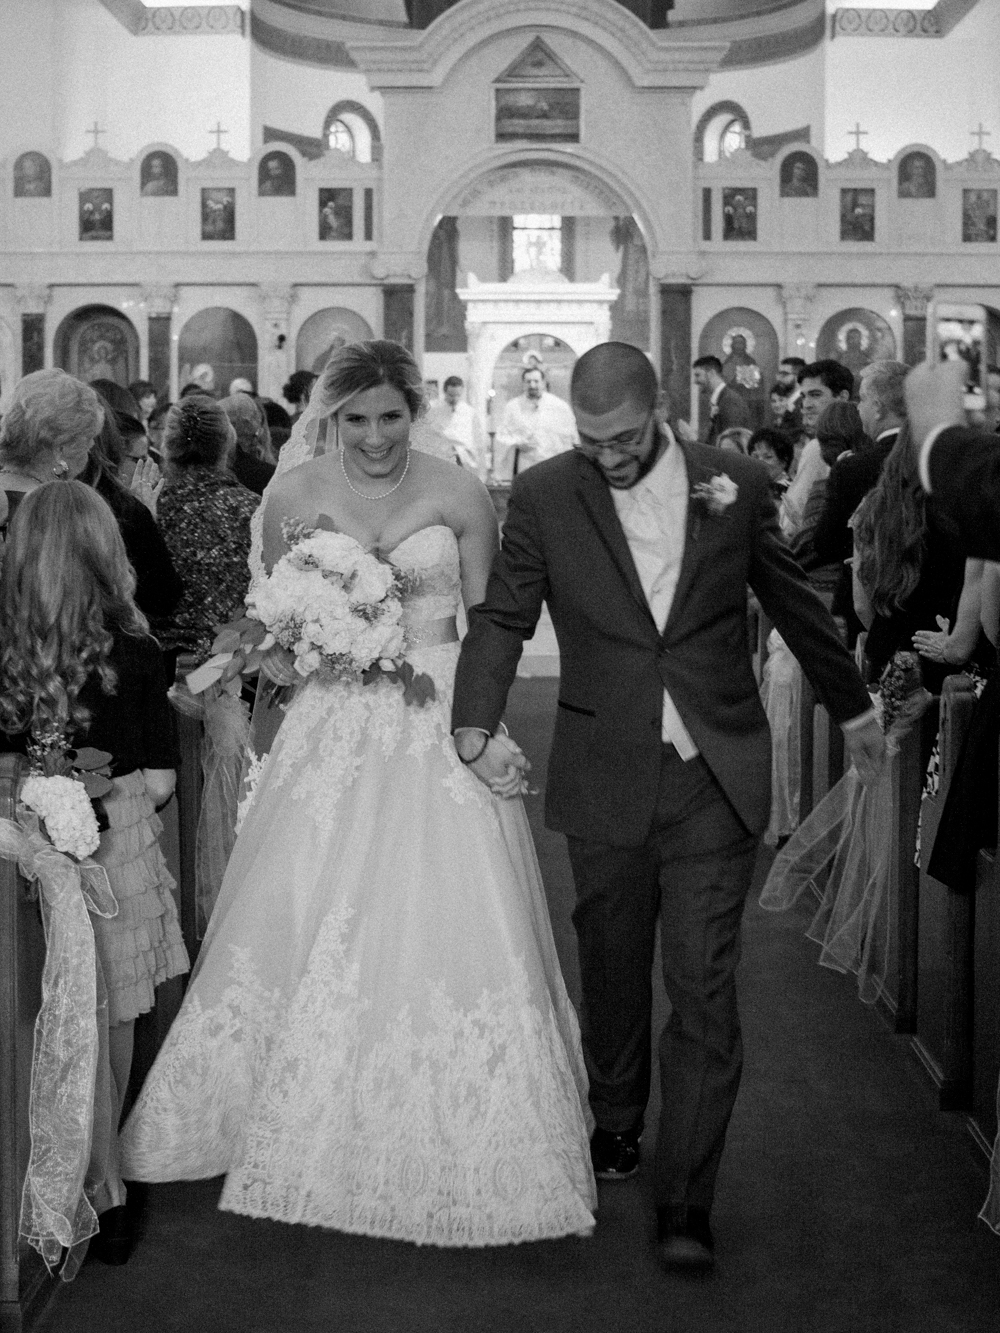 Houston wedding photographer - Christine Gosch - Houston film photographer - greek wedding in Houston - Annunciation Greek Orthodox church in Houston, Texas - Houston wedding planner -33.jpg